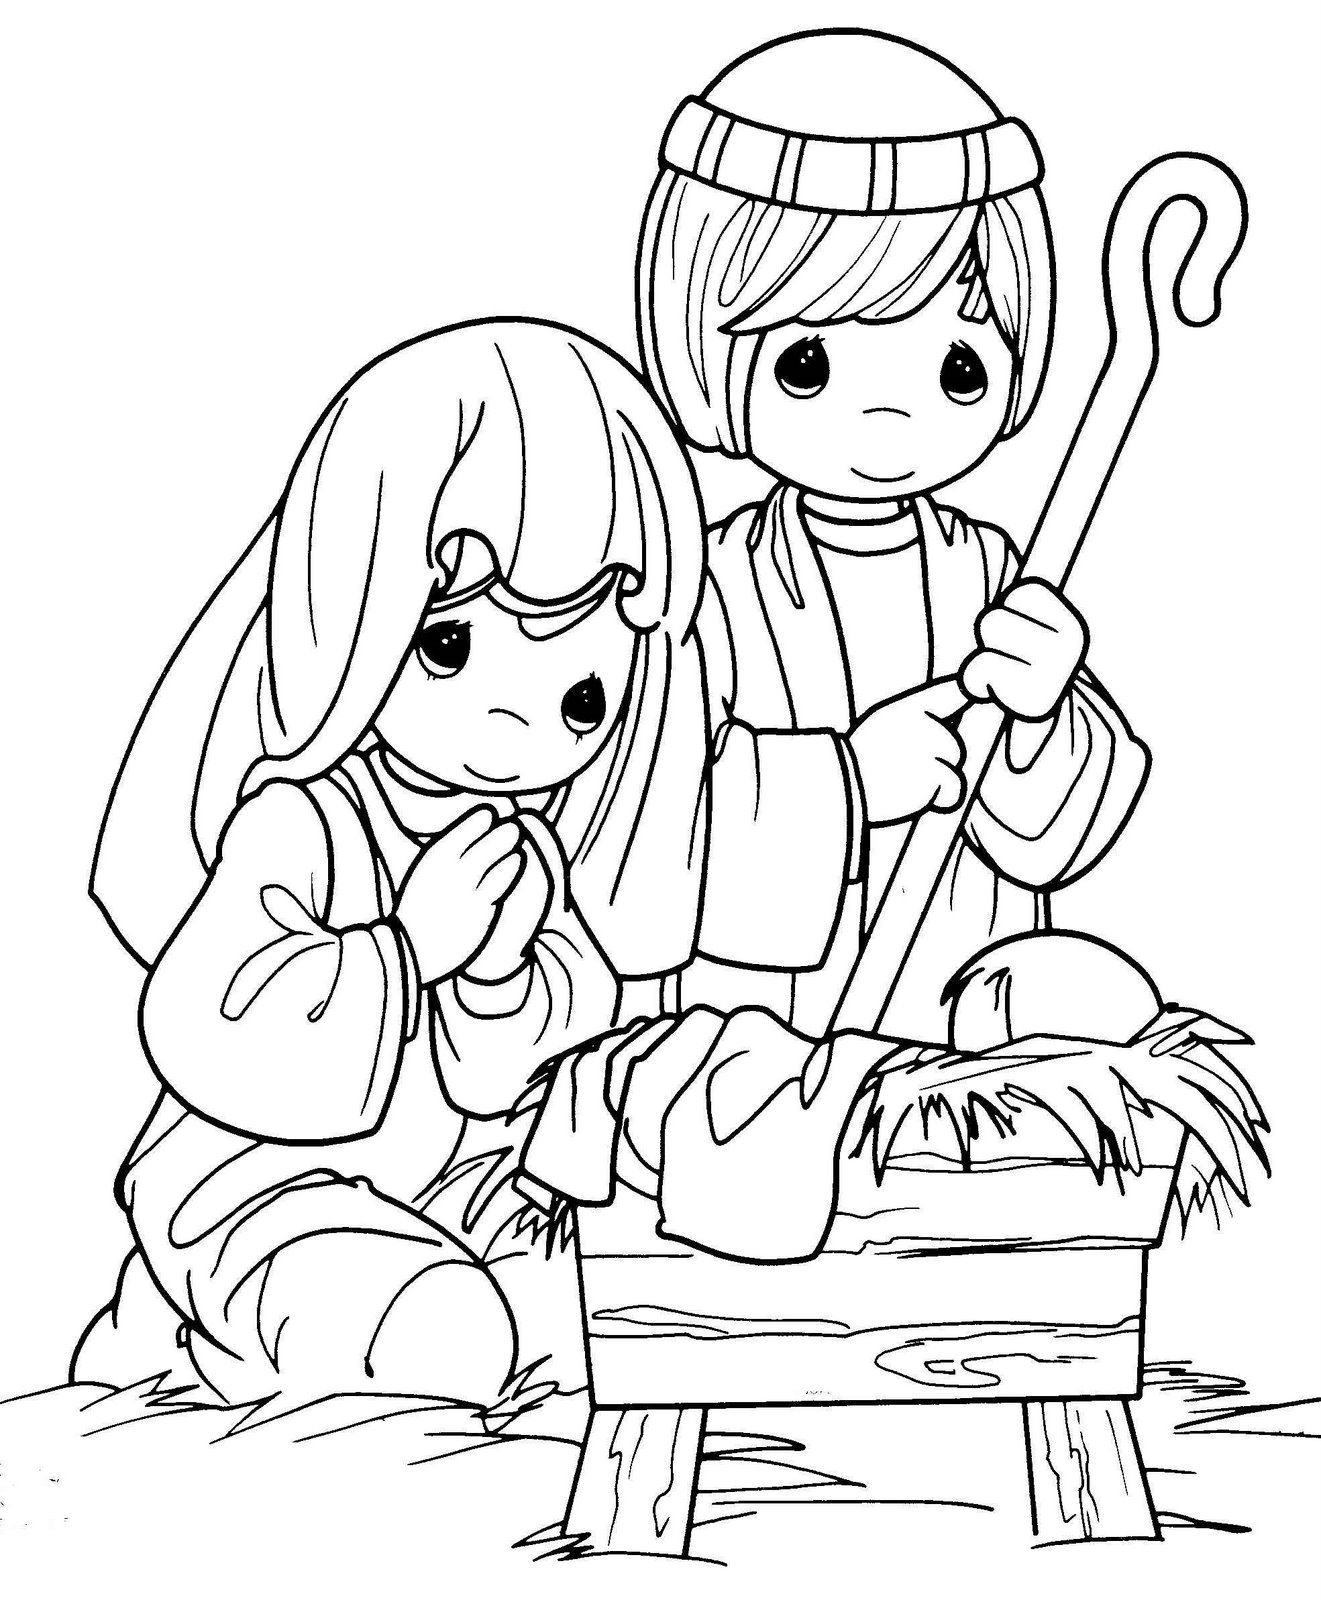 Coloring Pages : Jesus Coloring Pages Pdf Innovative Nativity ... | 1600x1321